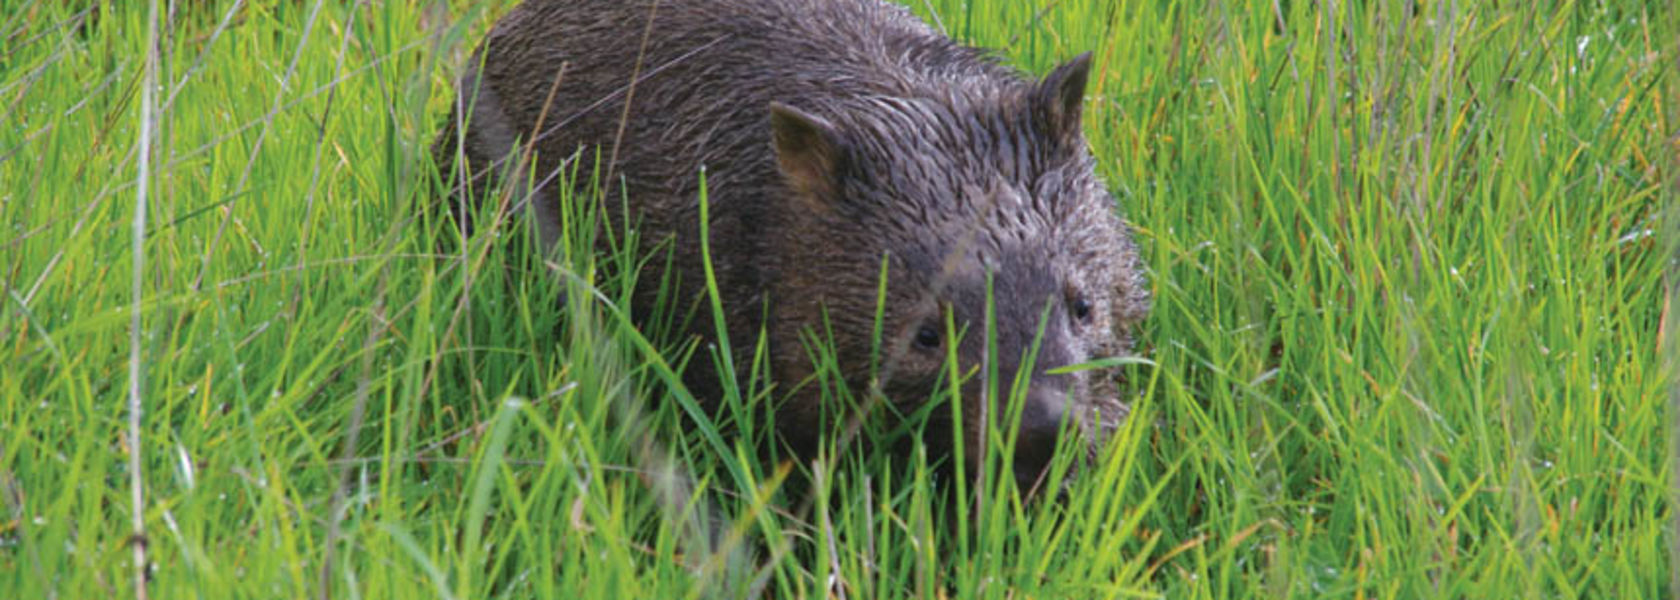 Wet and weary wombat goes walkabout